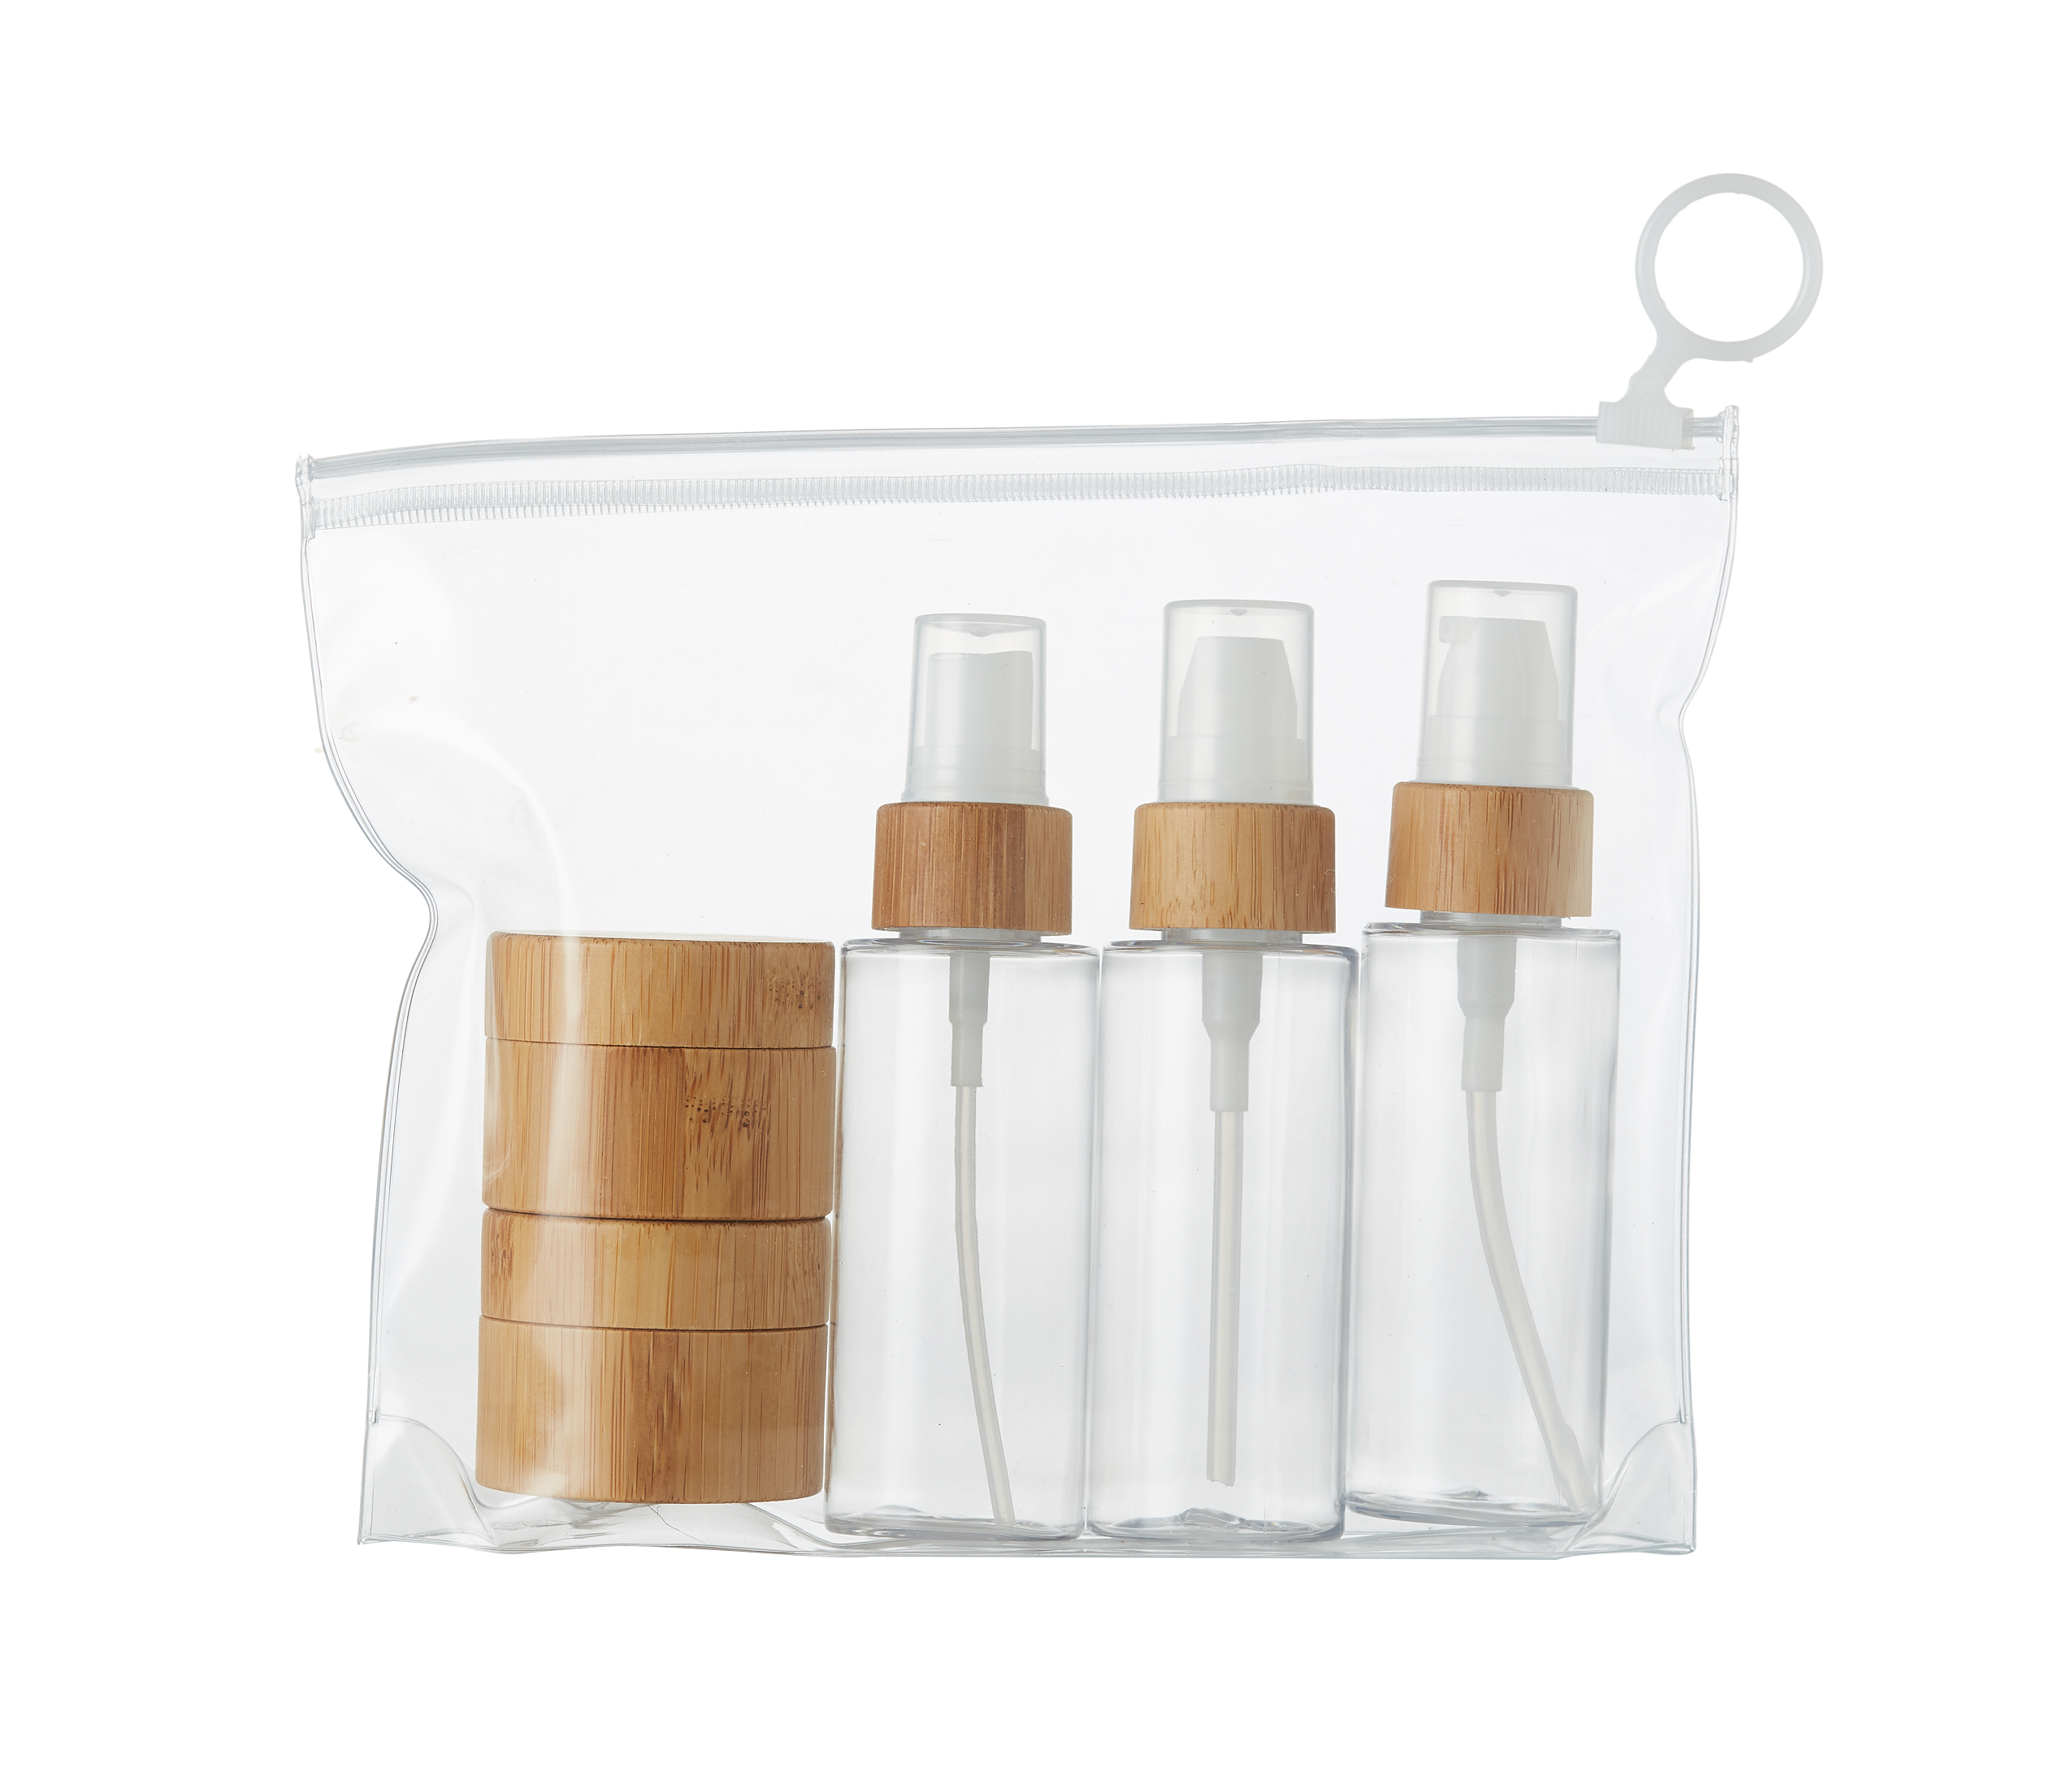 PET bamboo spray bottles packaging travel sets cosmetic packaging travel kit